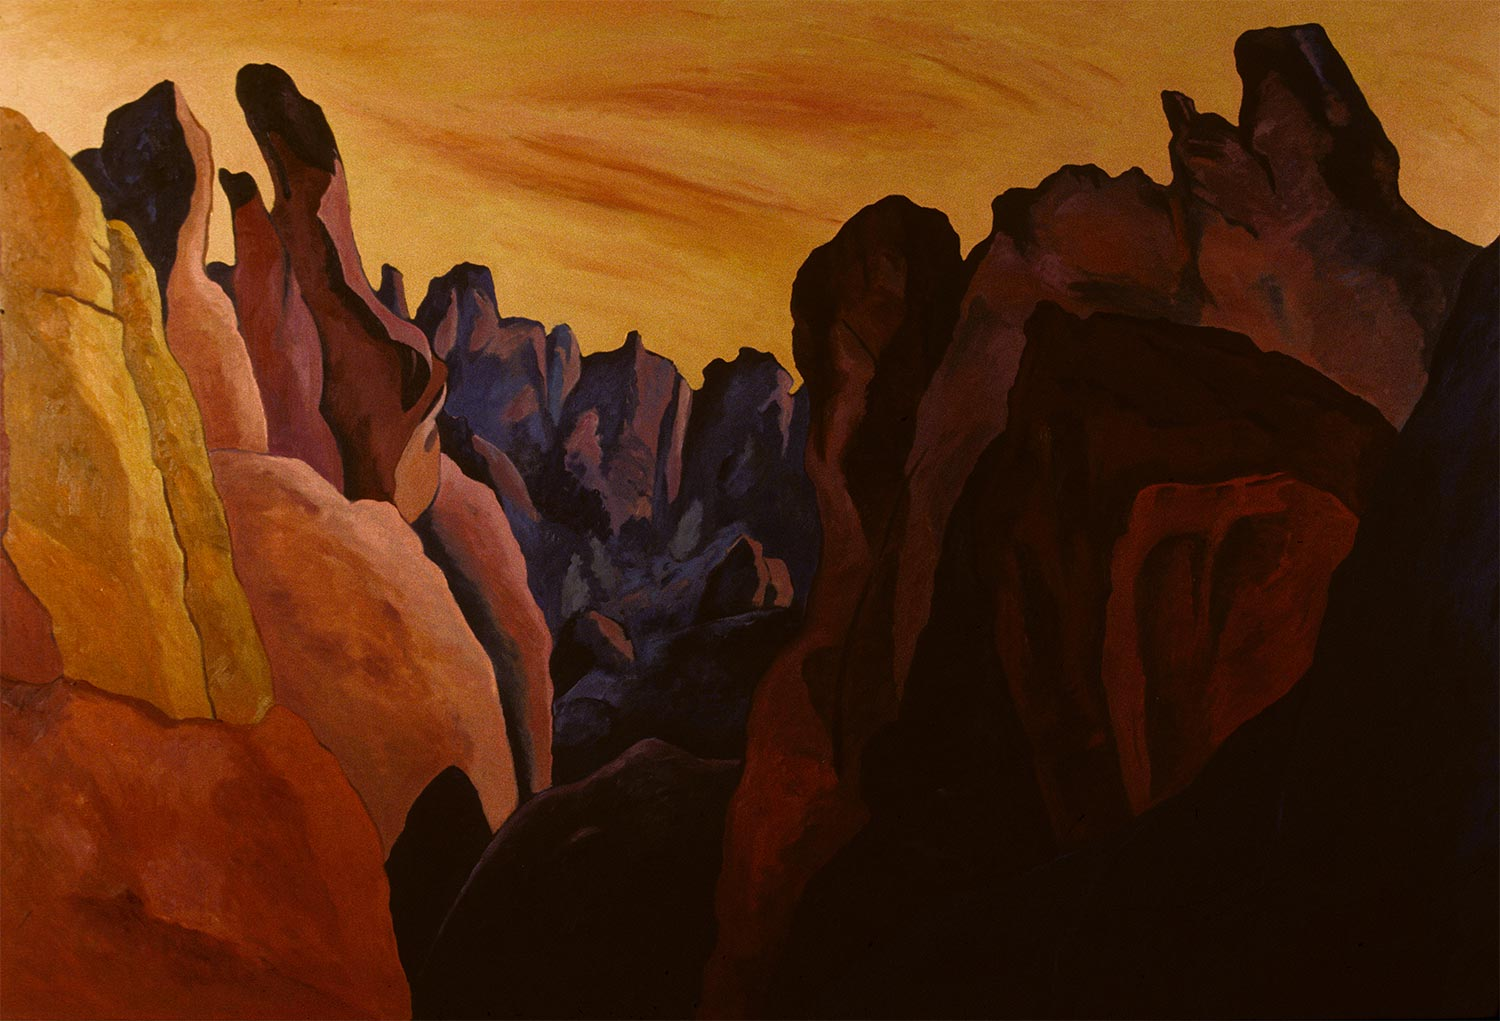 Pinnacles #9, Oil on canvas, Paintings of California by Mary Alice Copp